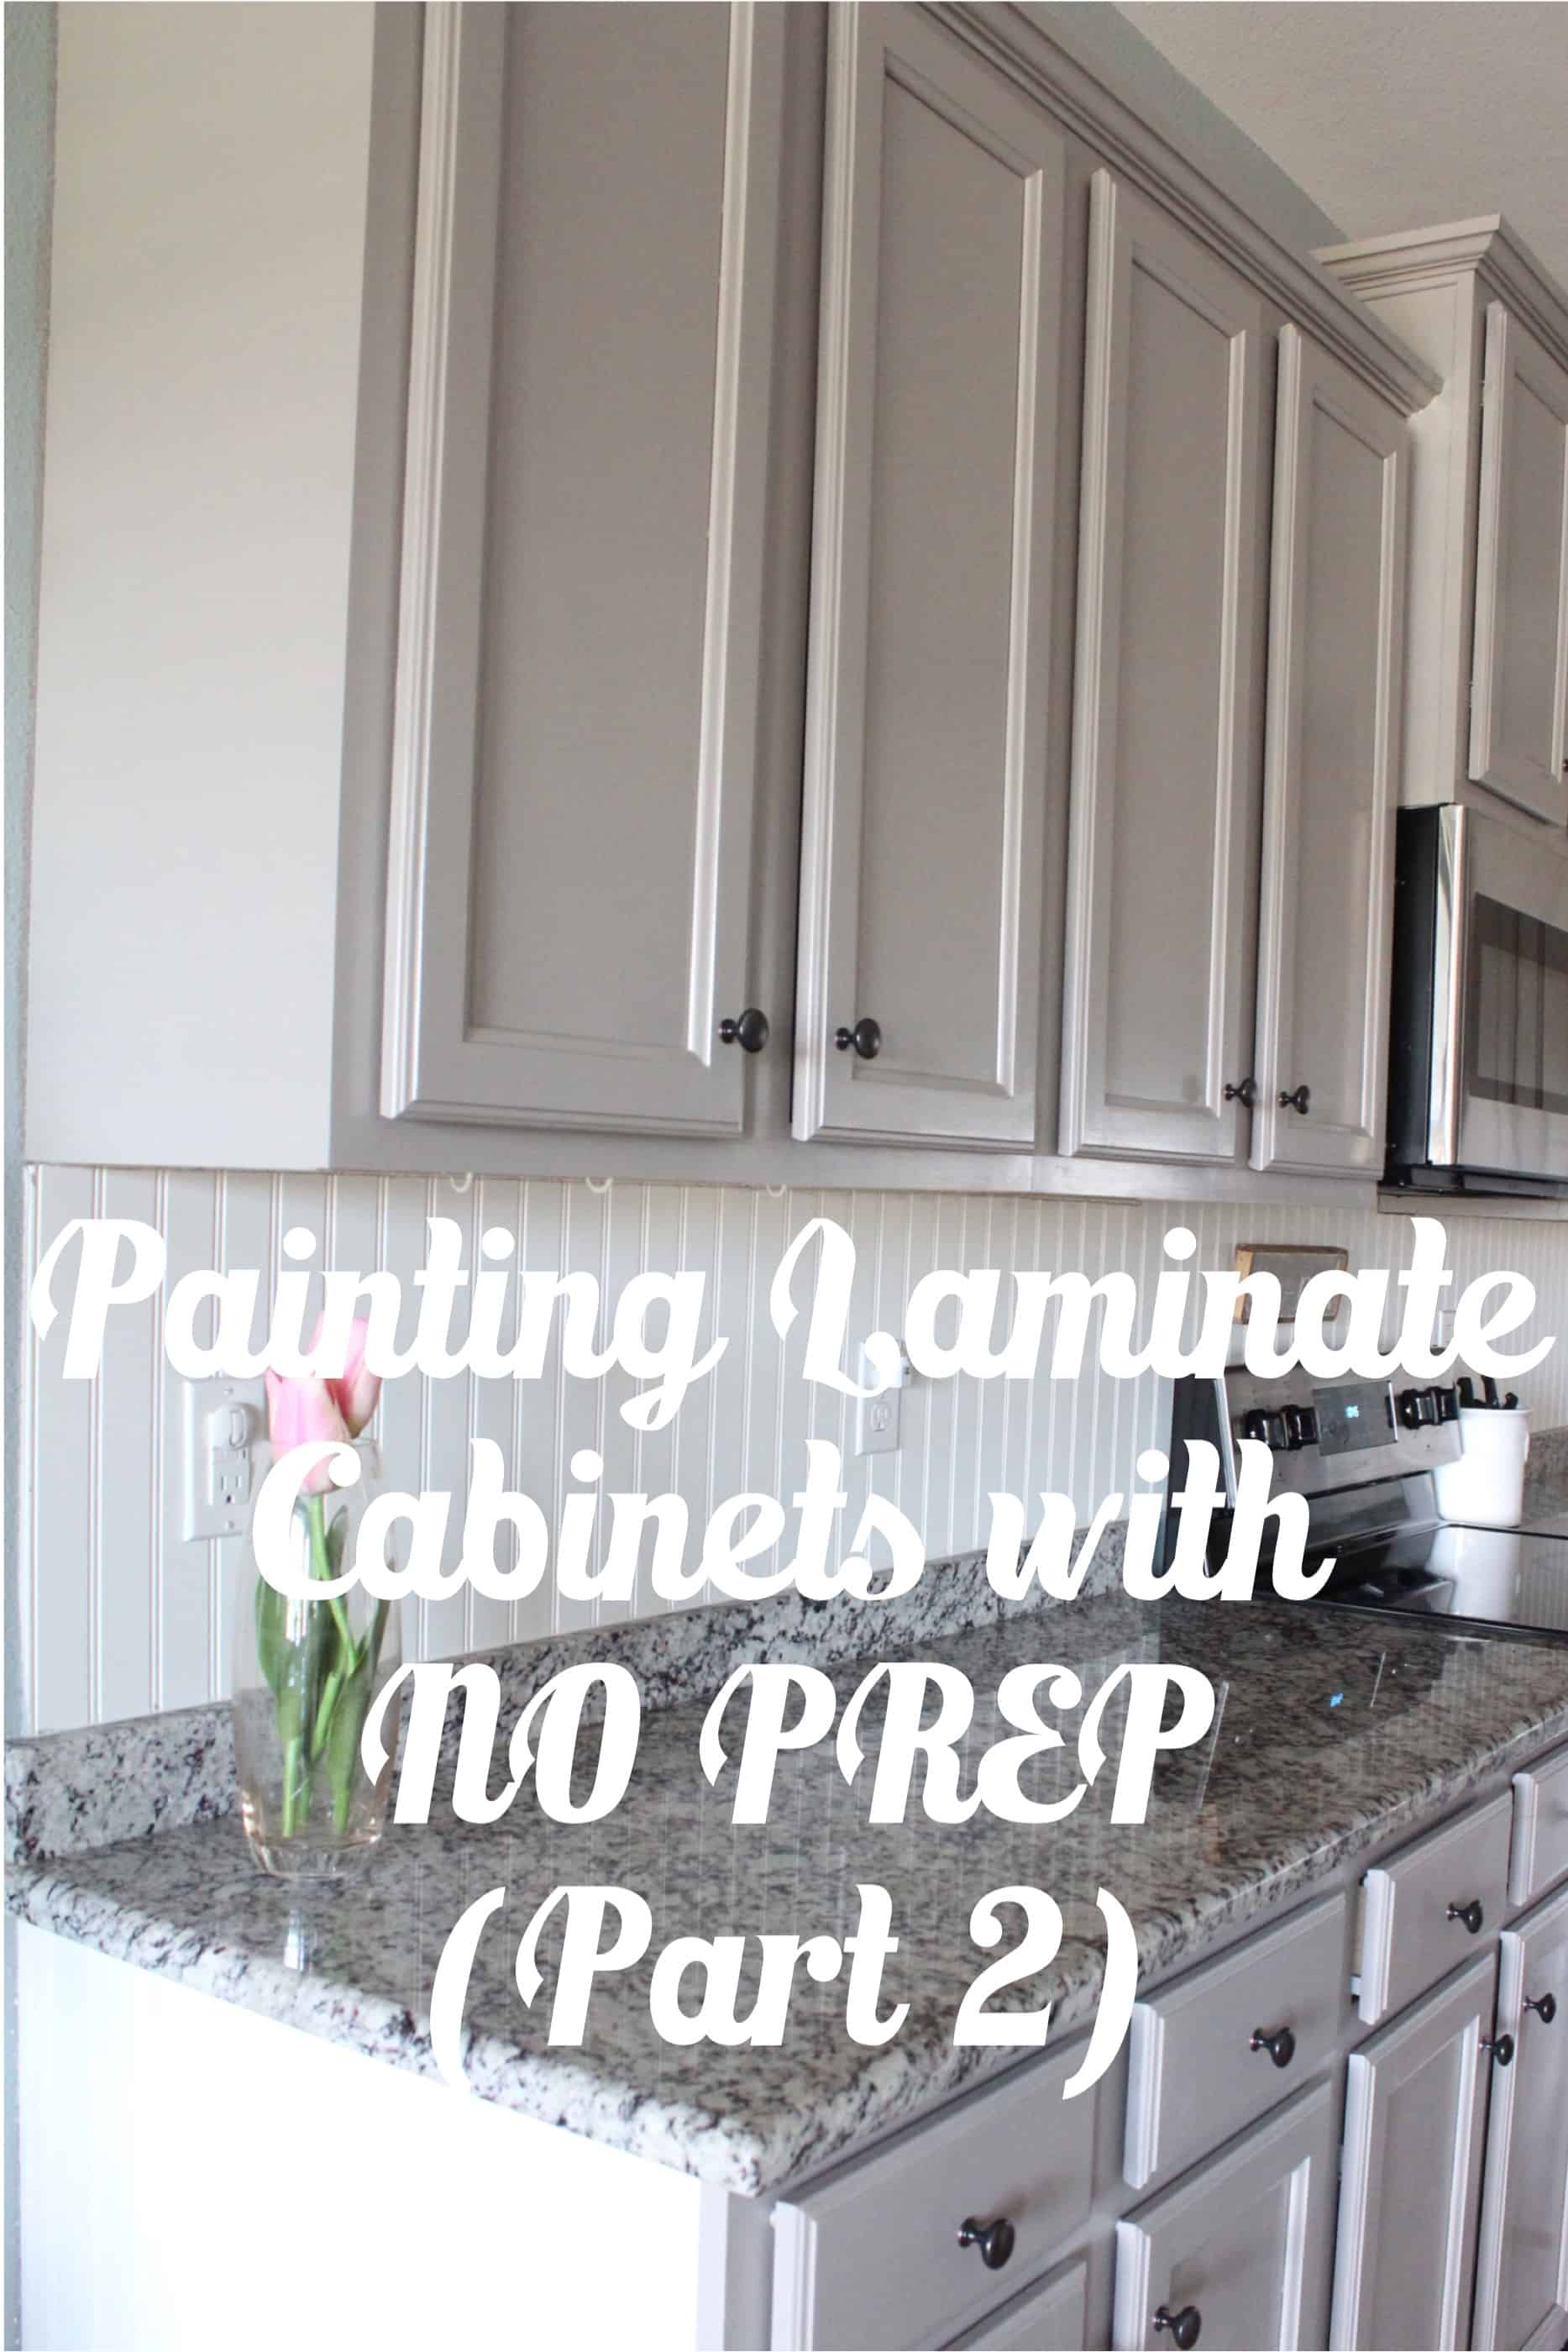 How To Prep Kitchen Cabinets For Painting Painting Laminate Cabinets With No Prep Work Part 2